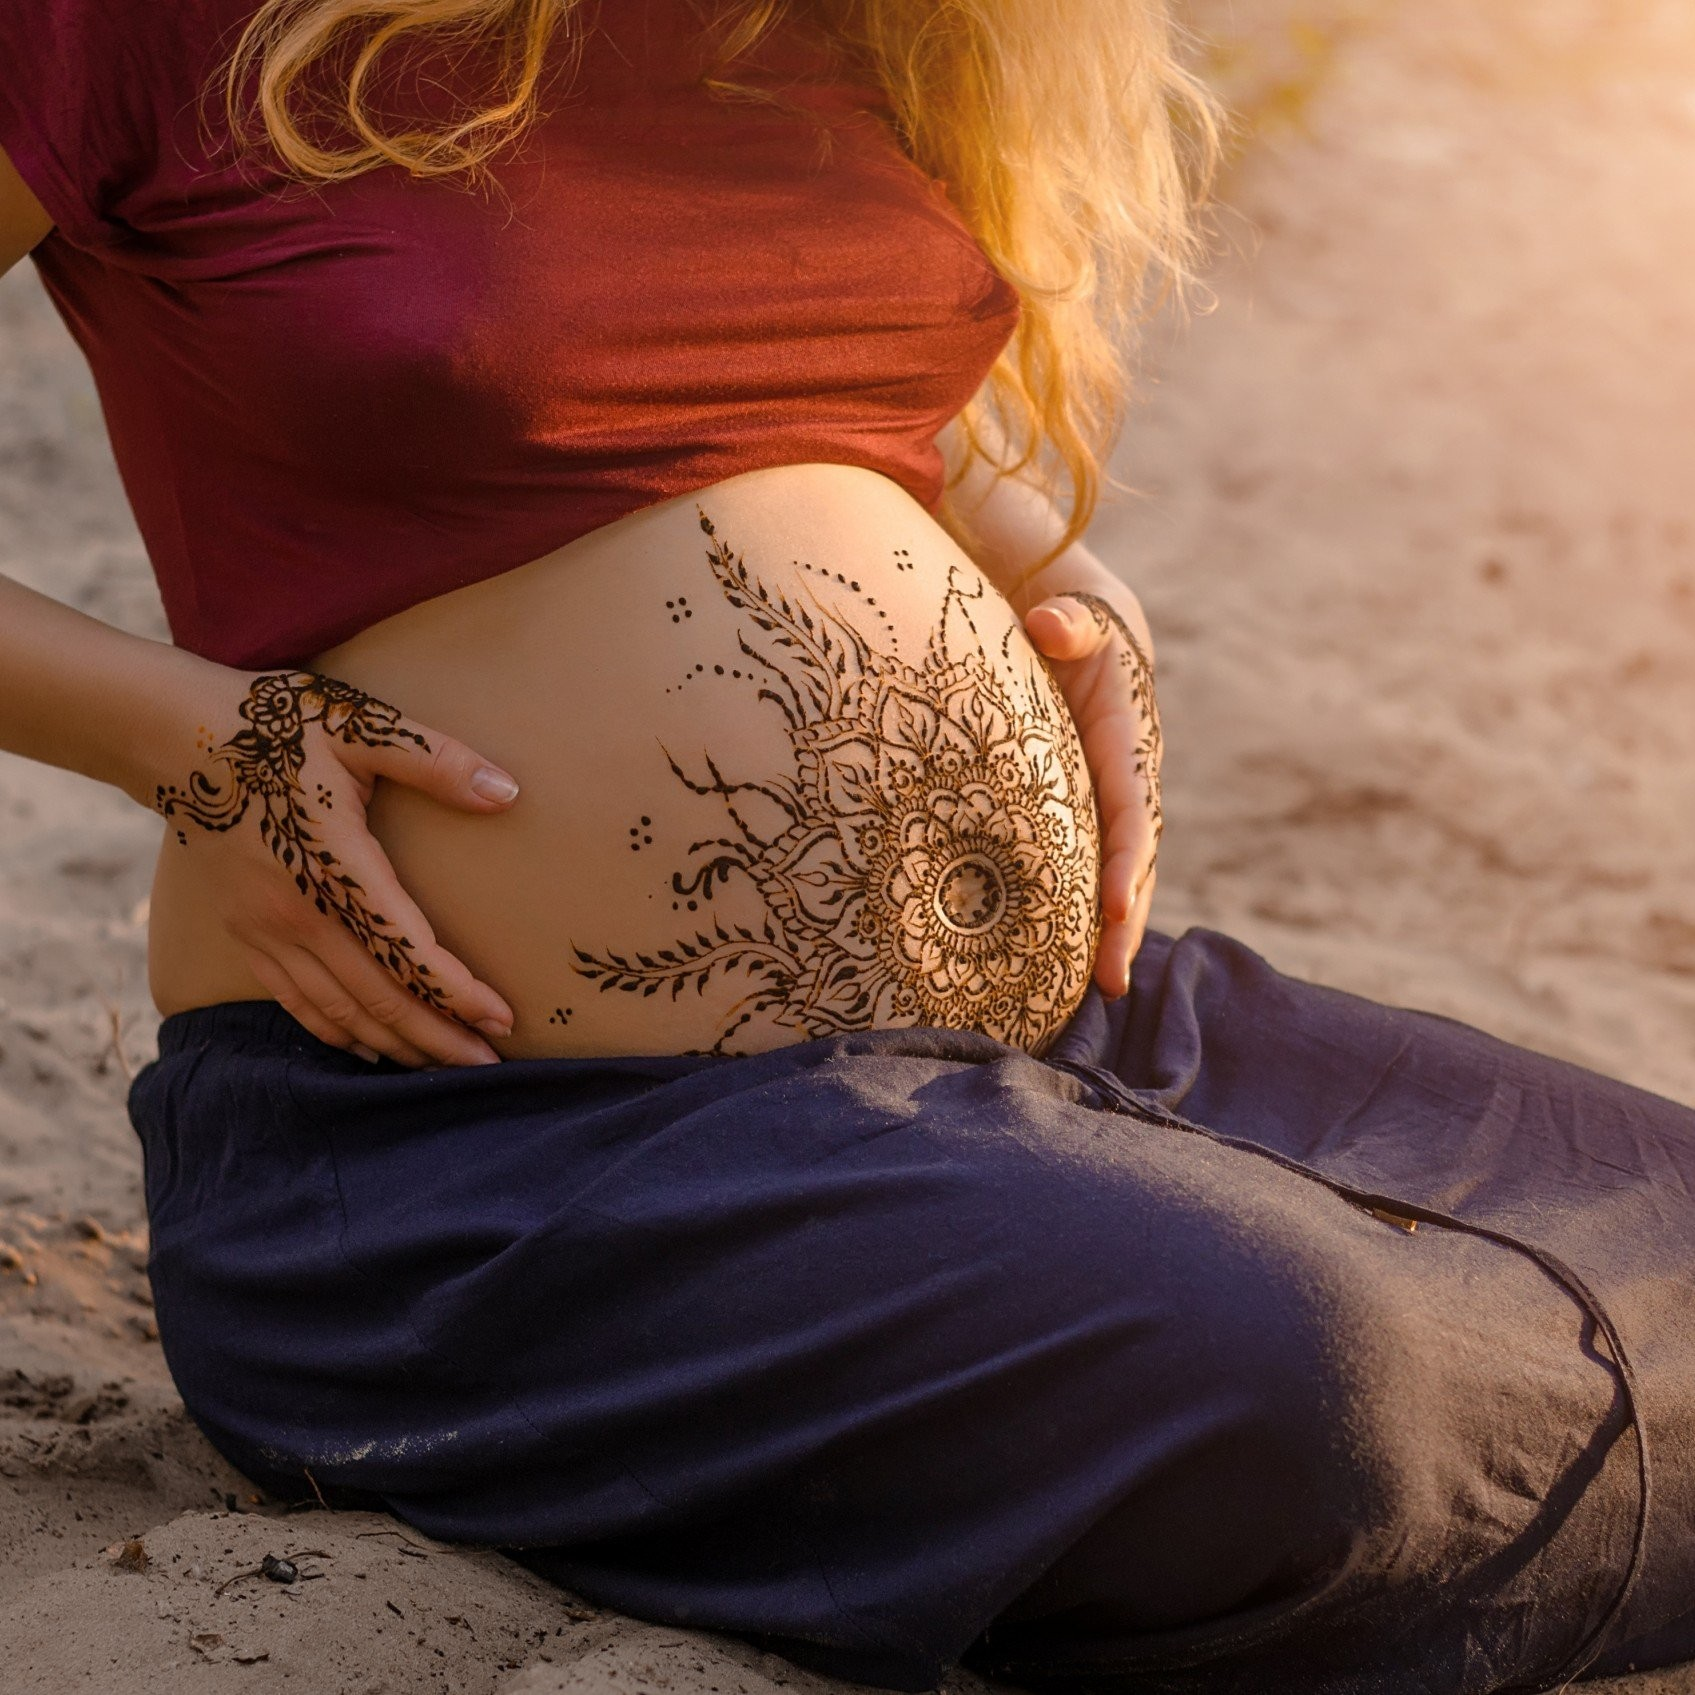 Pregnant woman with mehendi henna tattoo on her belly and hands, cropped image, hands on pregnant tummy. Motherhood concept, happy maternity